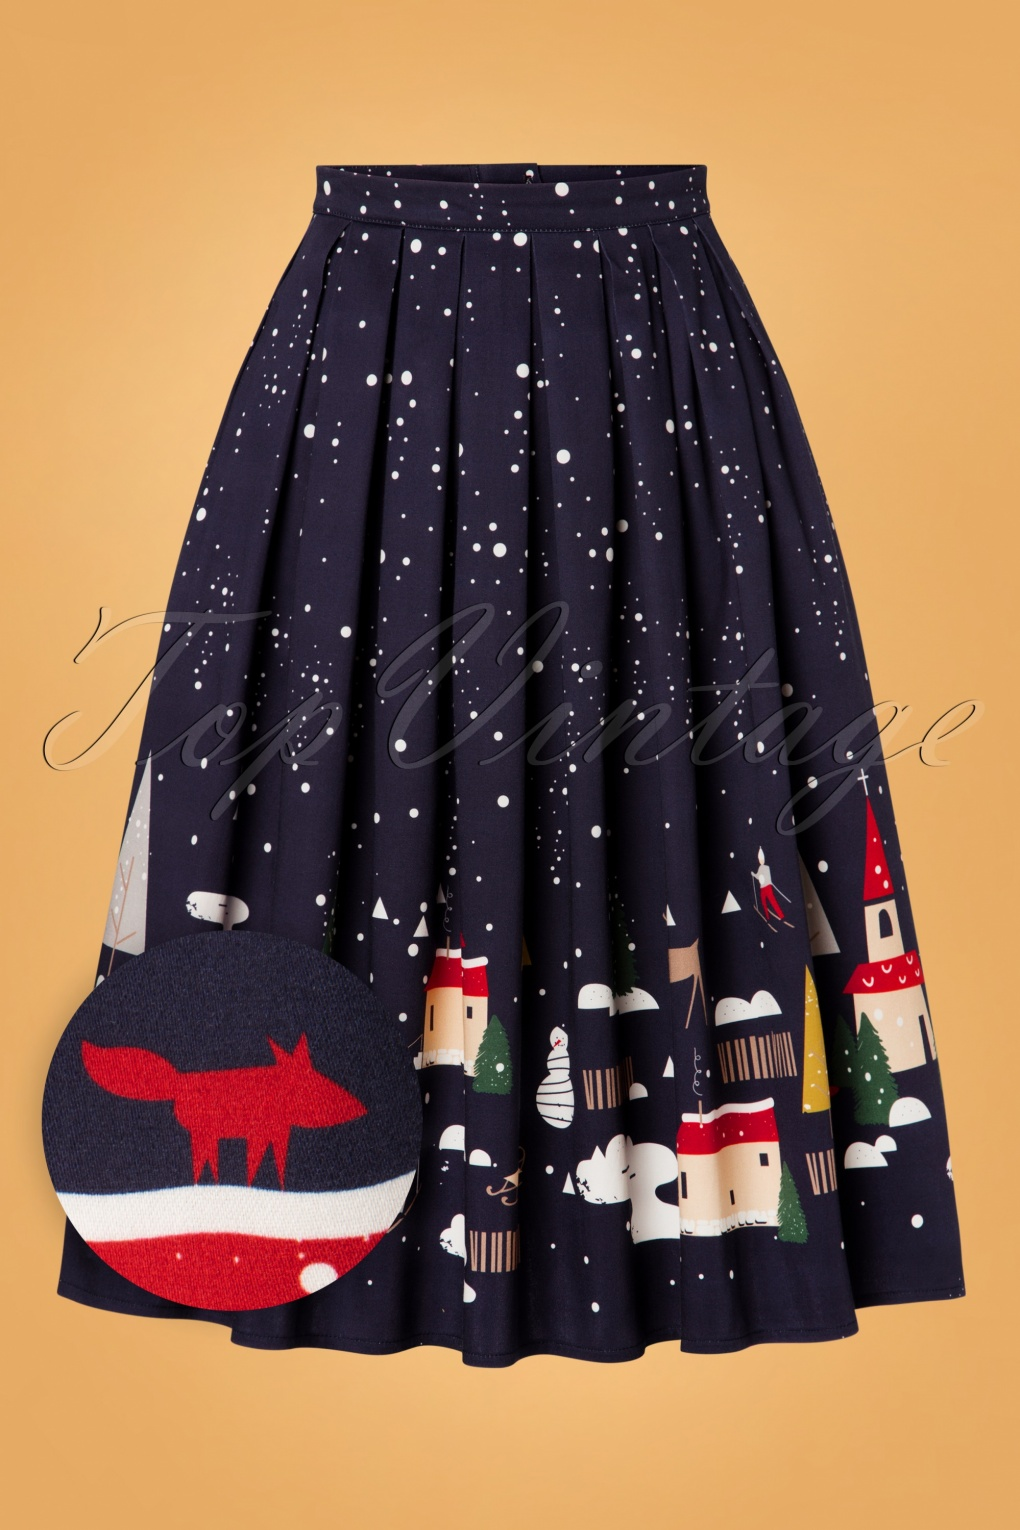 Vintage Red Dresses | Valentines Day Dresses, Outfits, Lingerie 50s Christmas Town Pleated Swing Skirt in Navy £37.84 AT vintagedancer.com